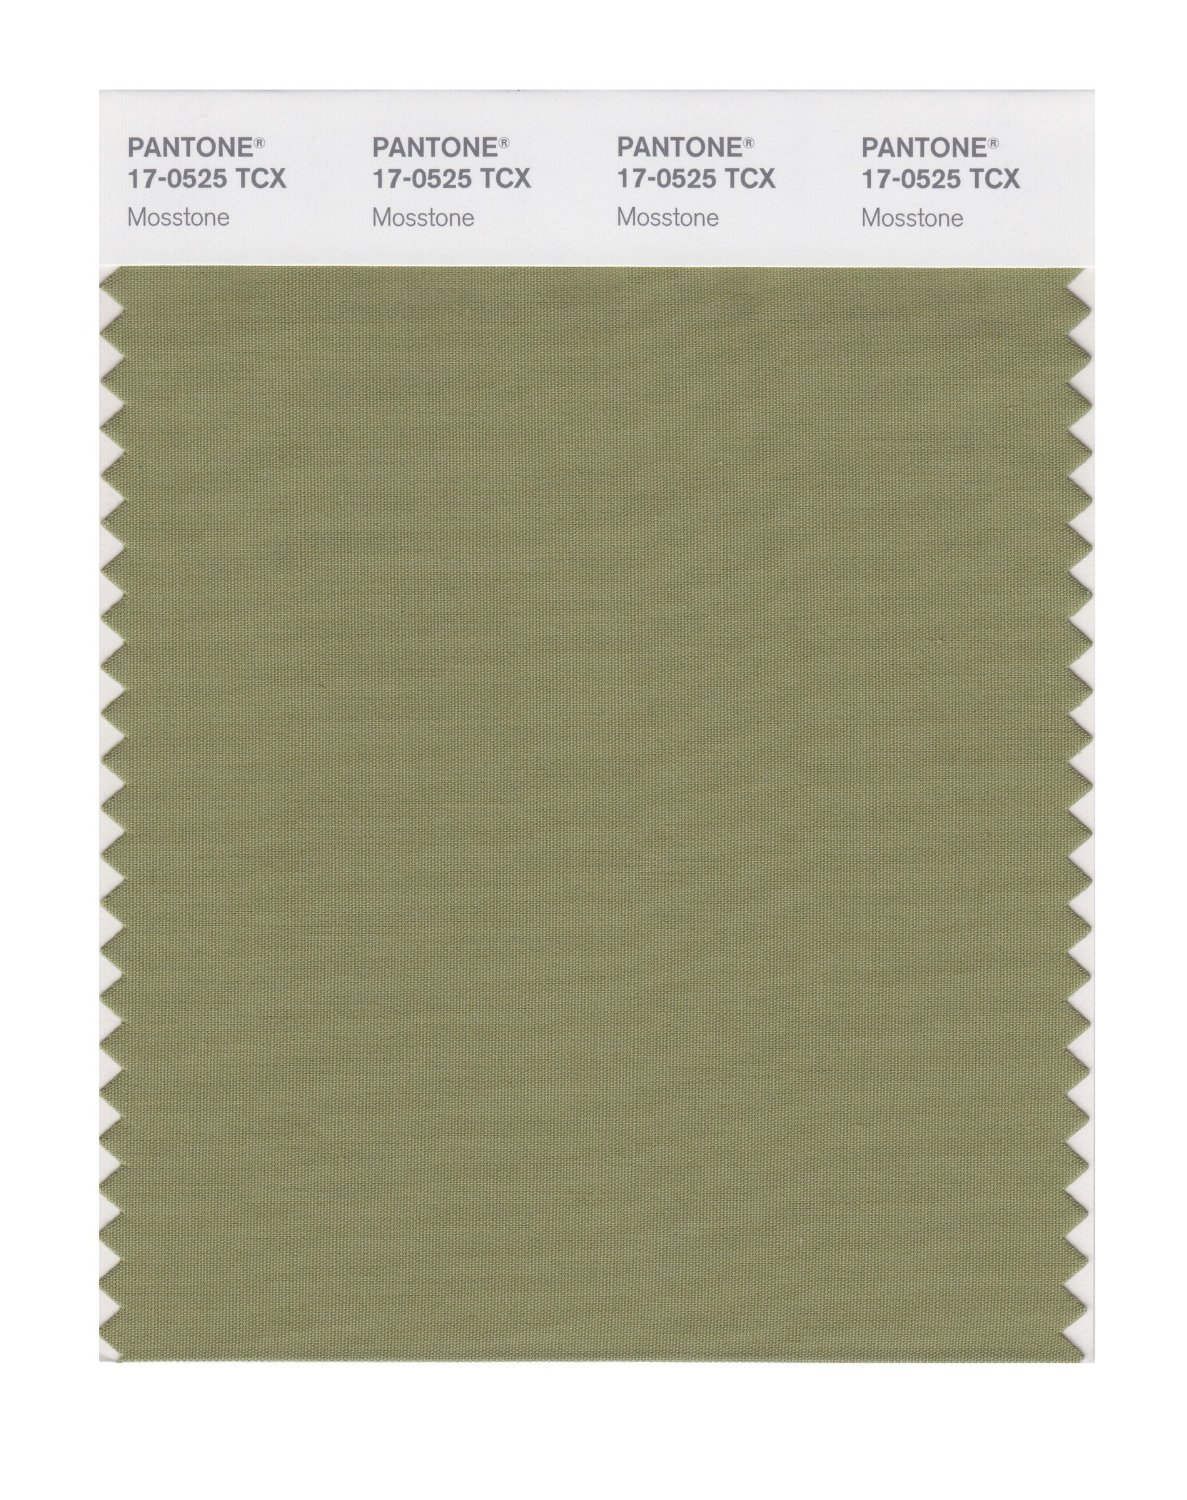 Pantone Smart Swatch 17-0525 Mosstone